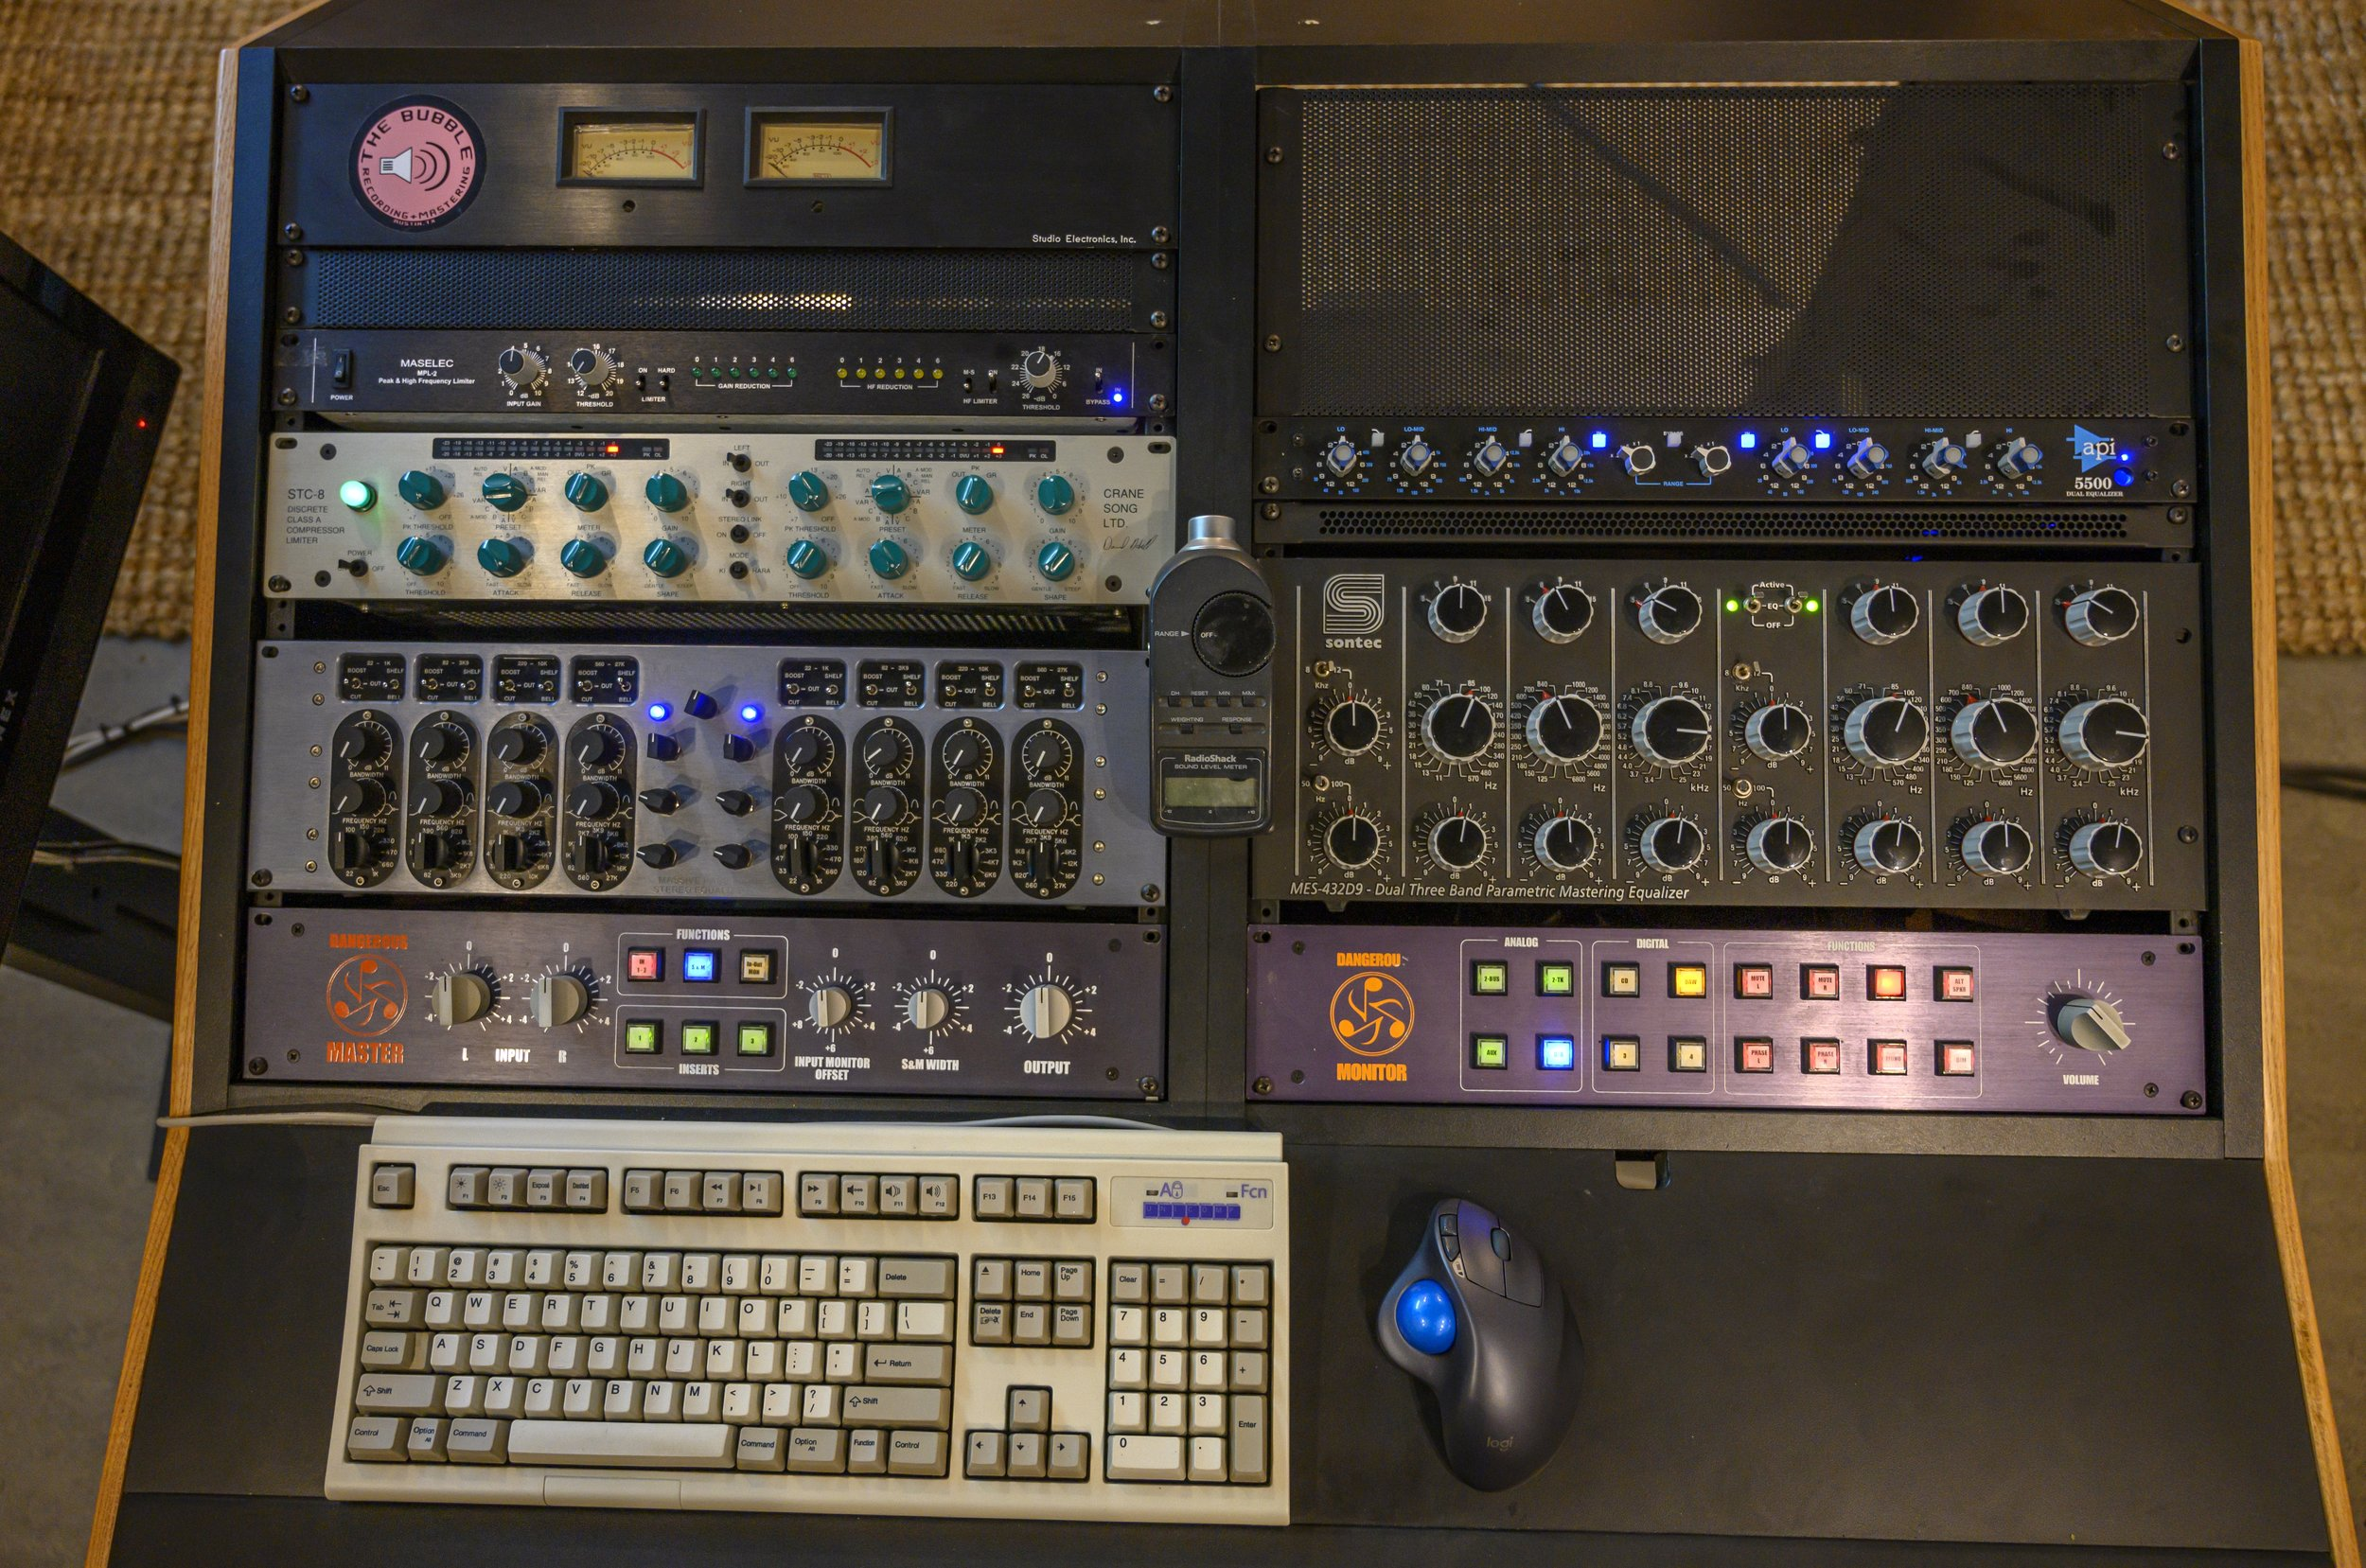 The mastering rig